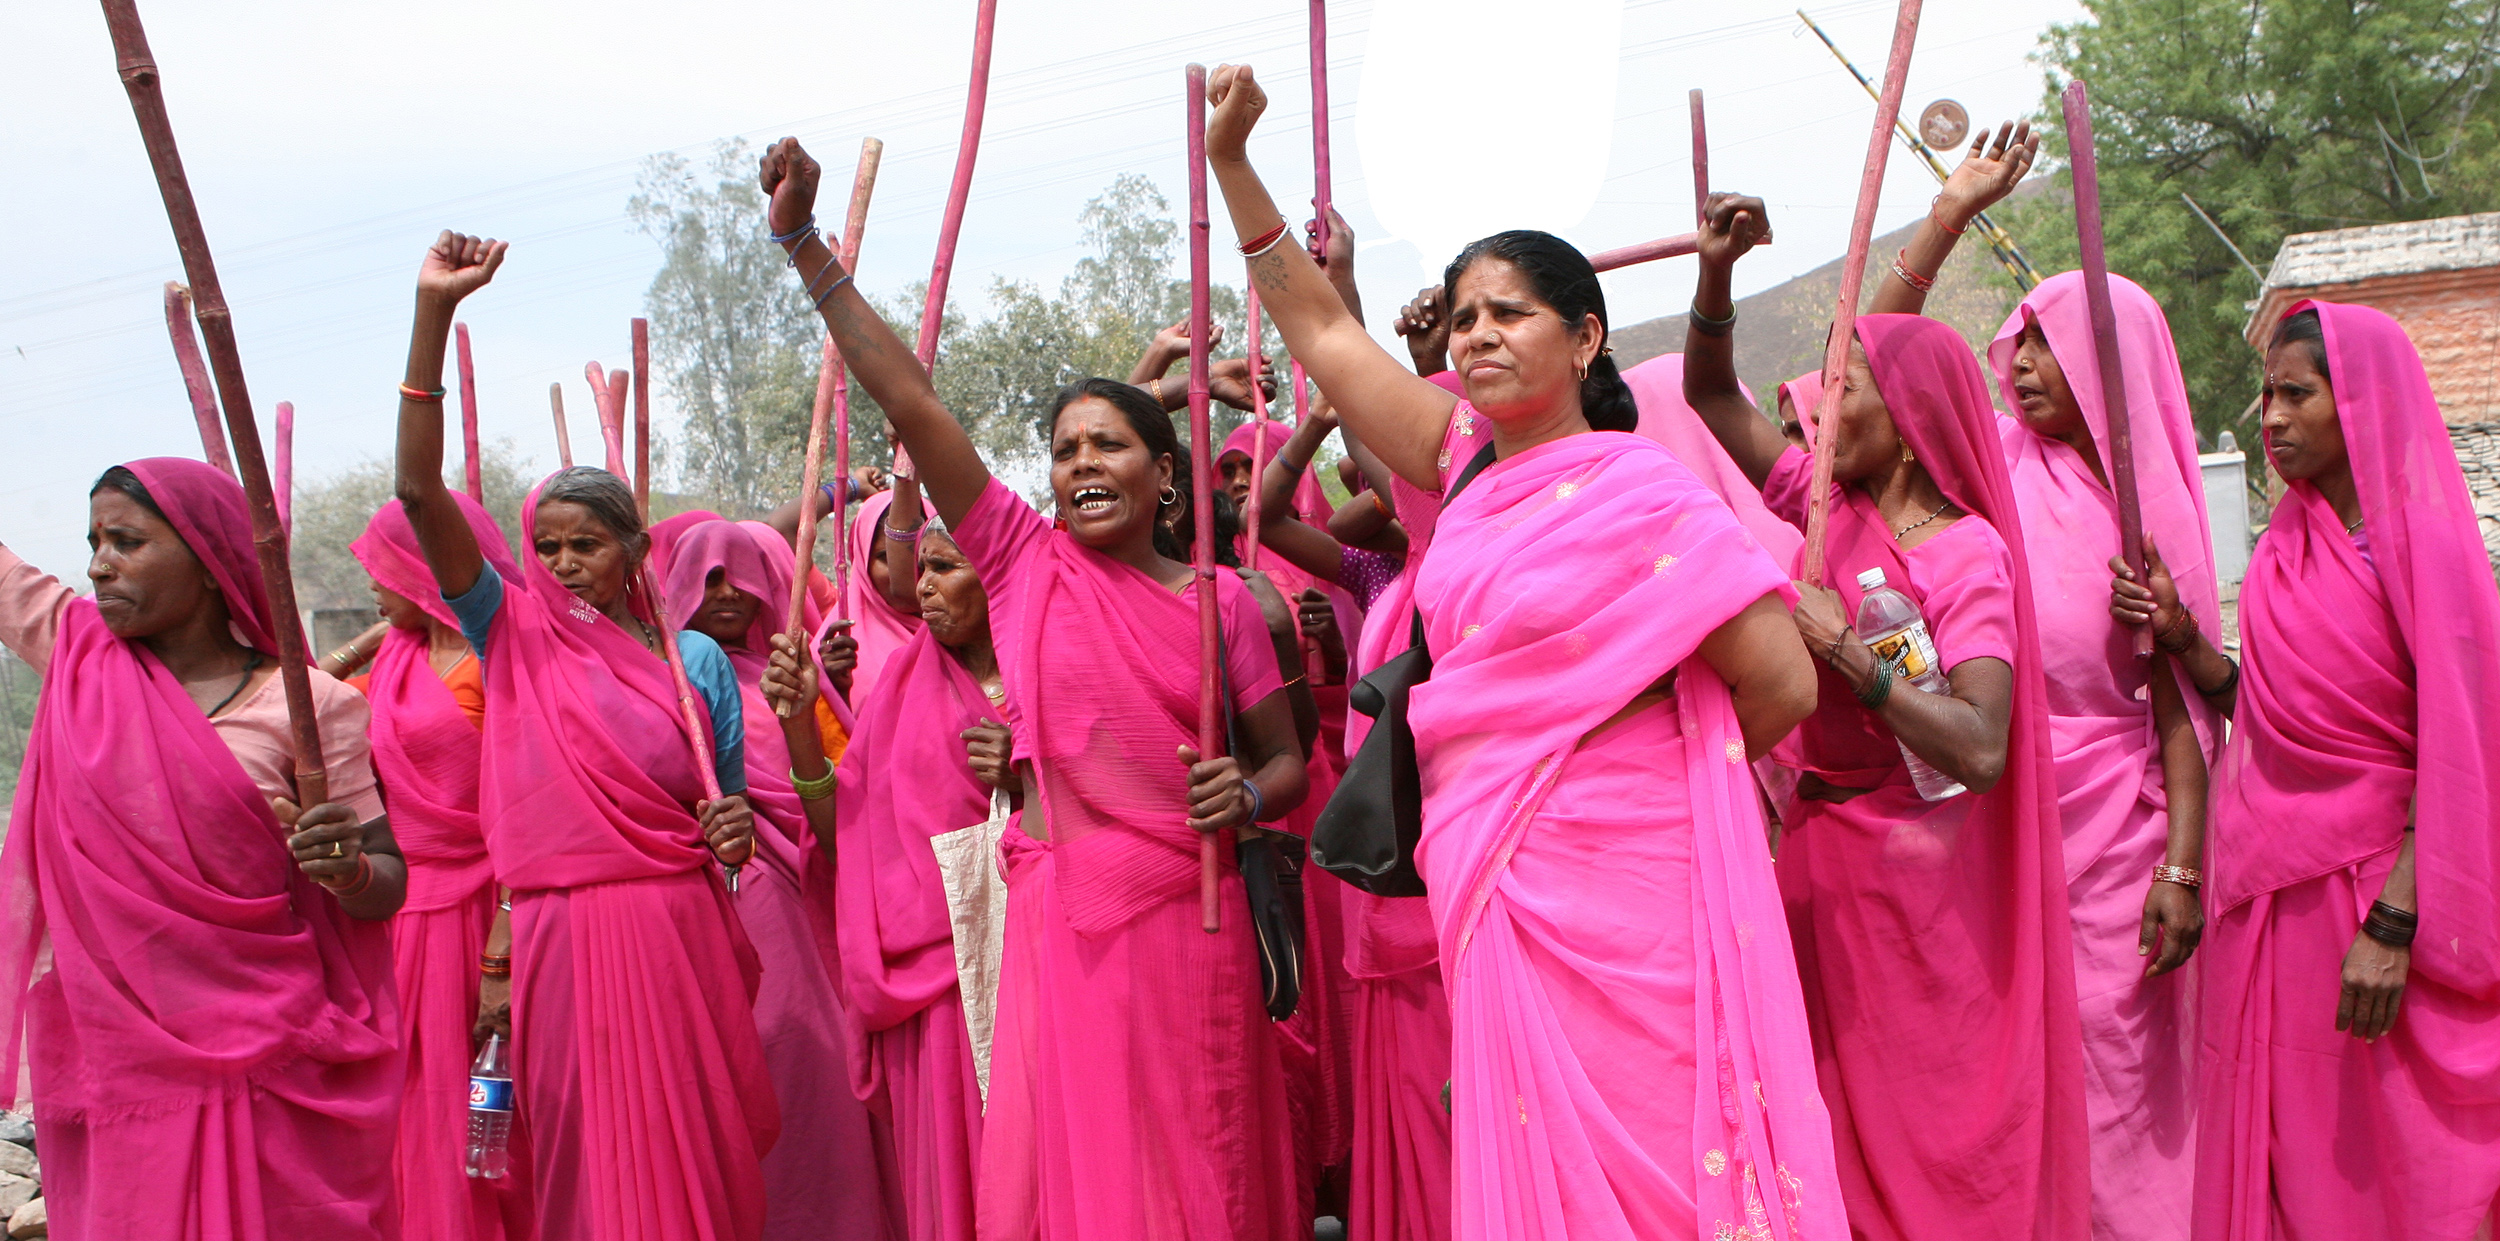 Gulabi-Gang-protest-photo-by-Torstein-Grude